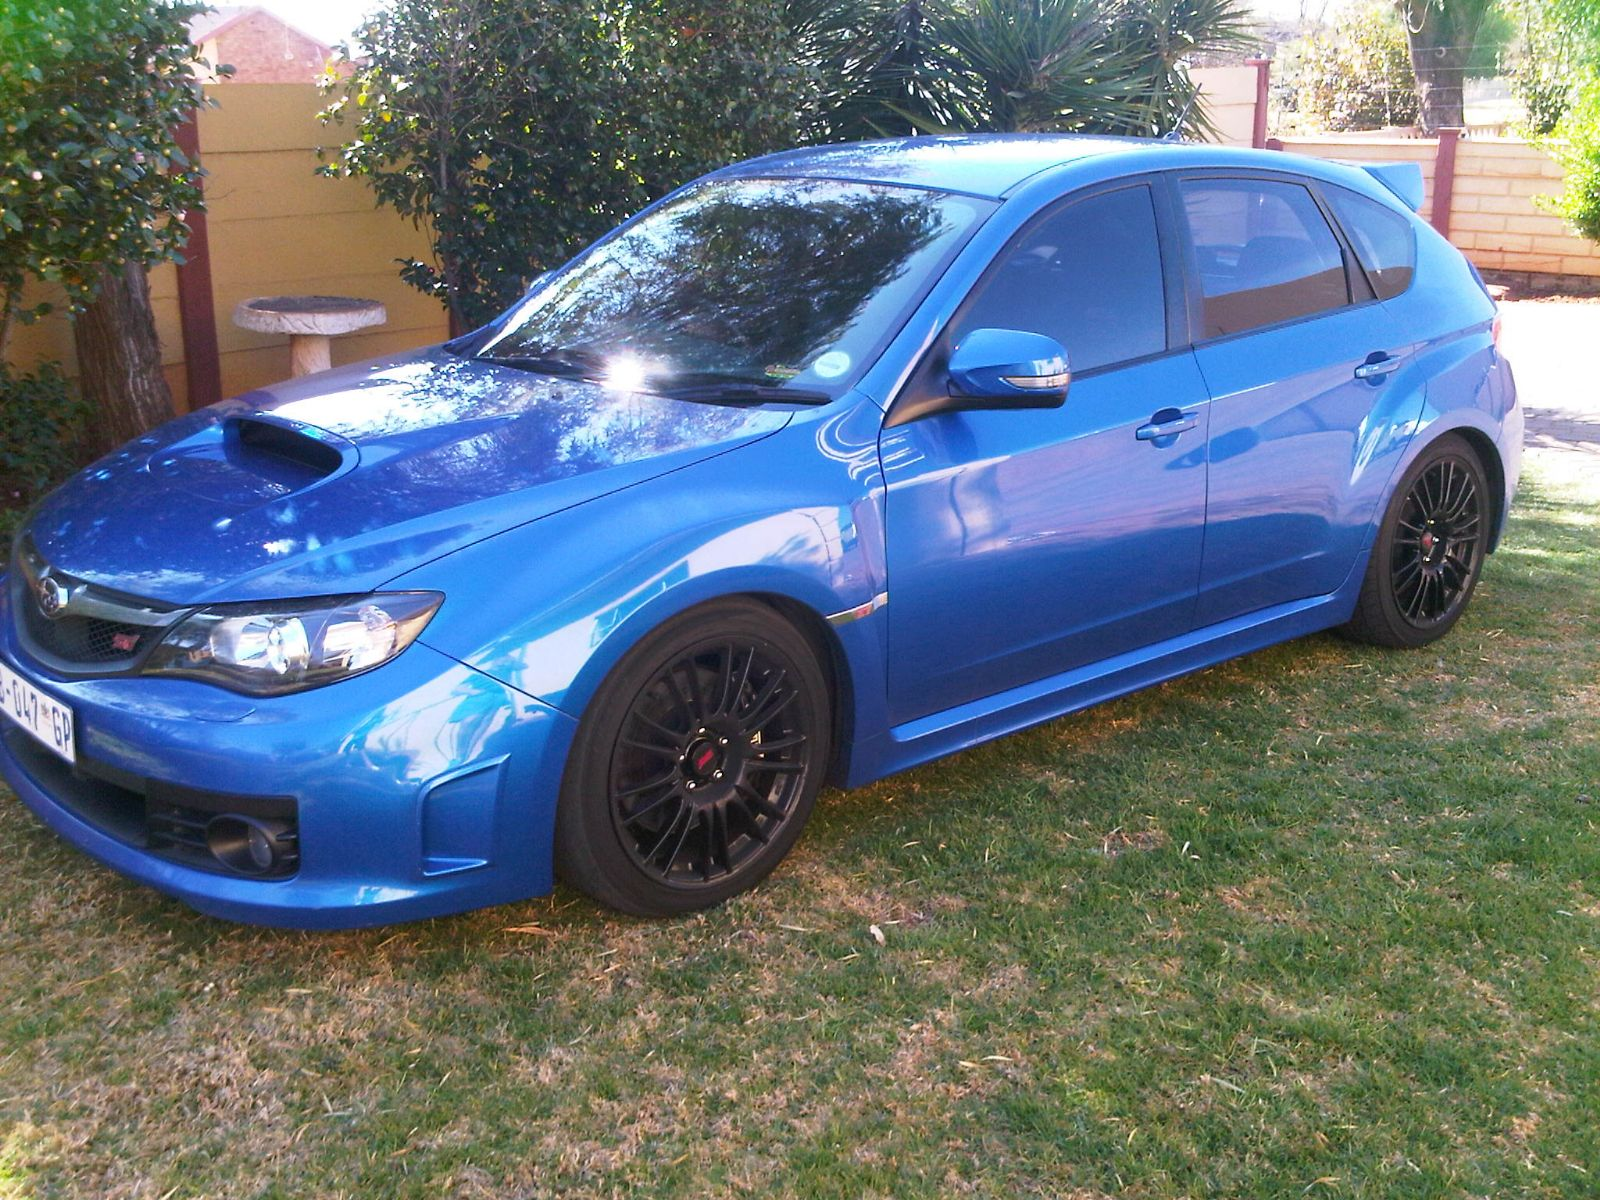 Subaru Impreza Wrx Hatchback for Sale Gallery – Drivins